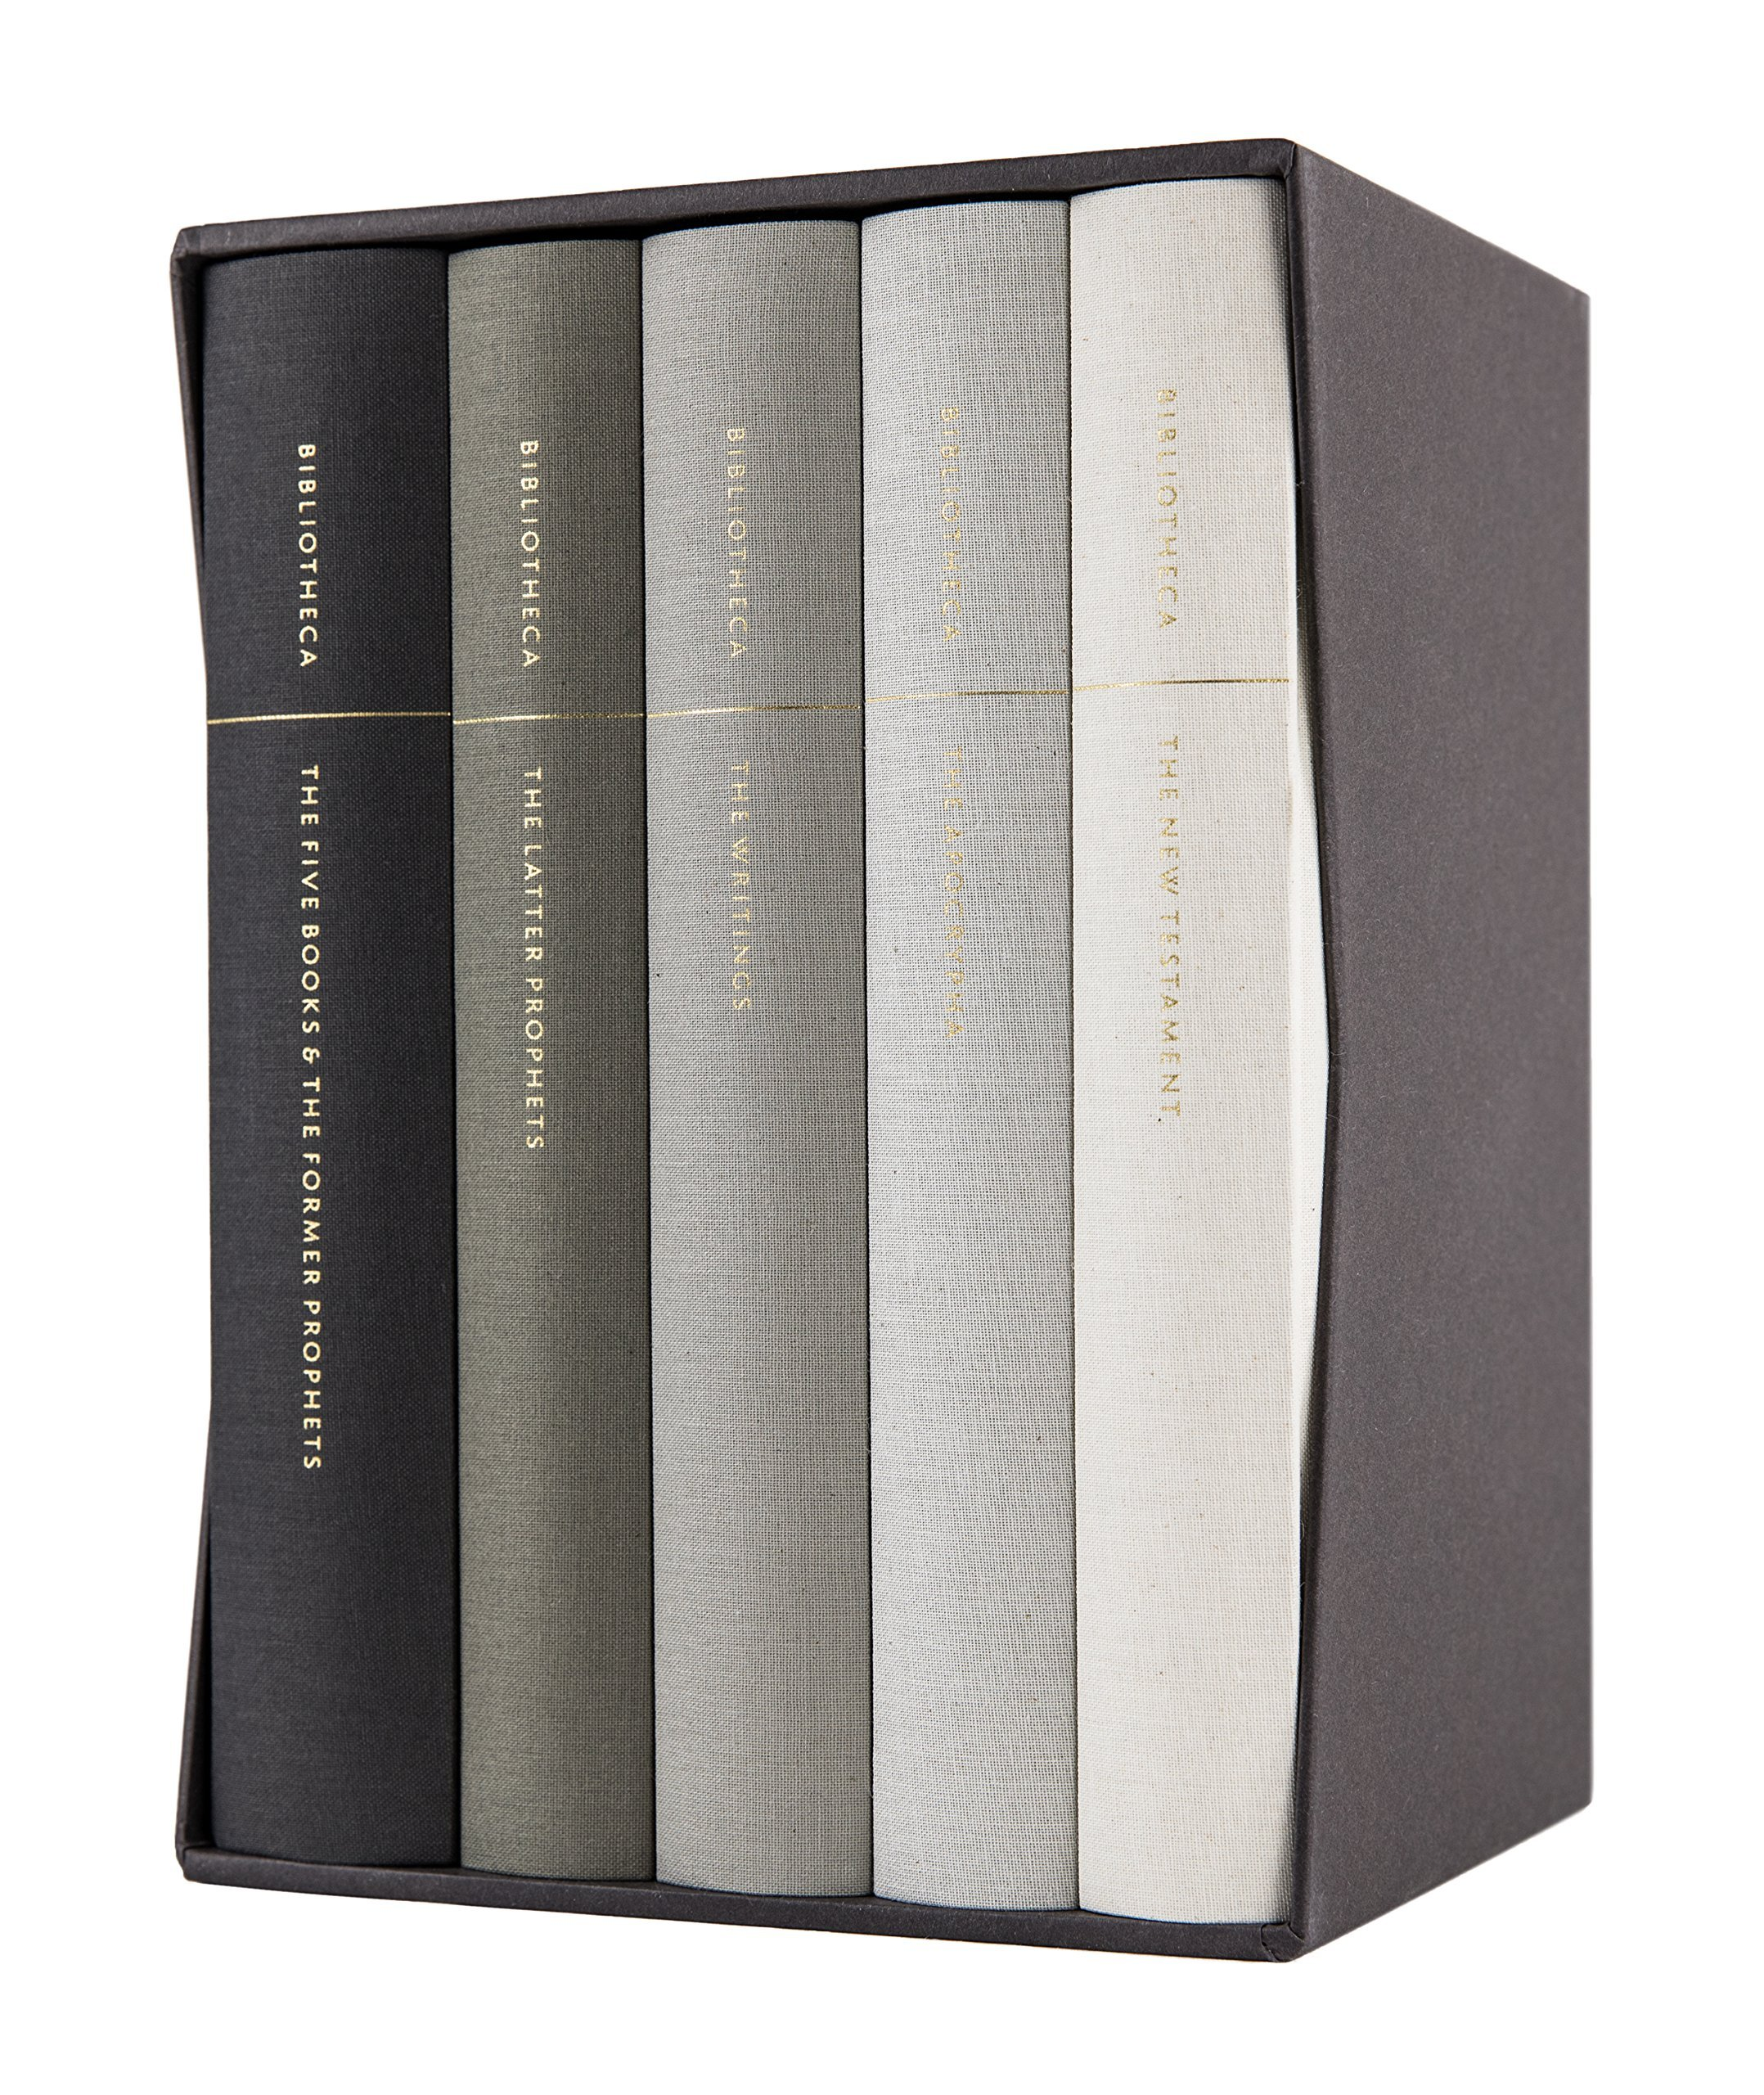 Download Bibliotheca: Complete Multi-volume Reader's Bible Clothbound Set, 5 Volumes (Including the Apocrypha) pdf